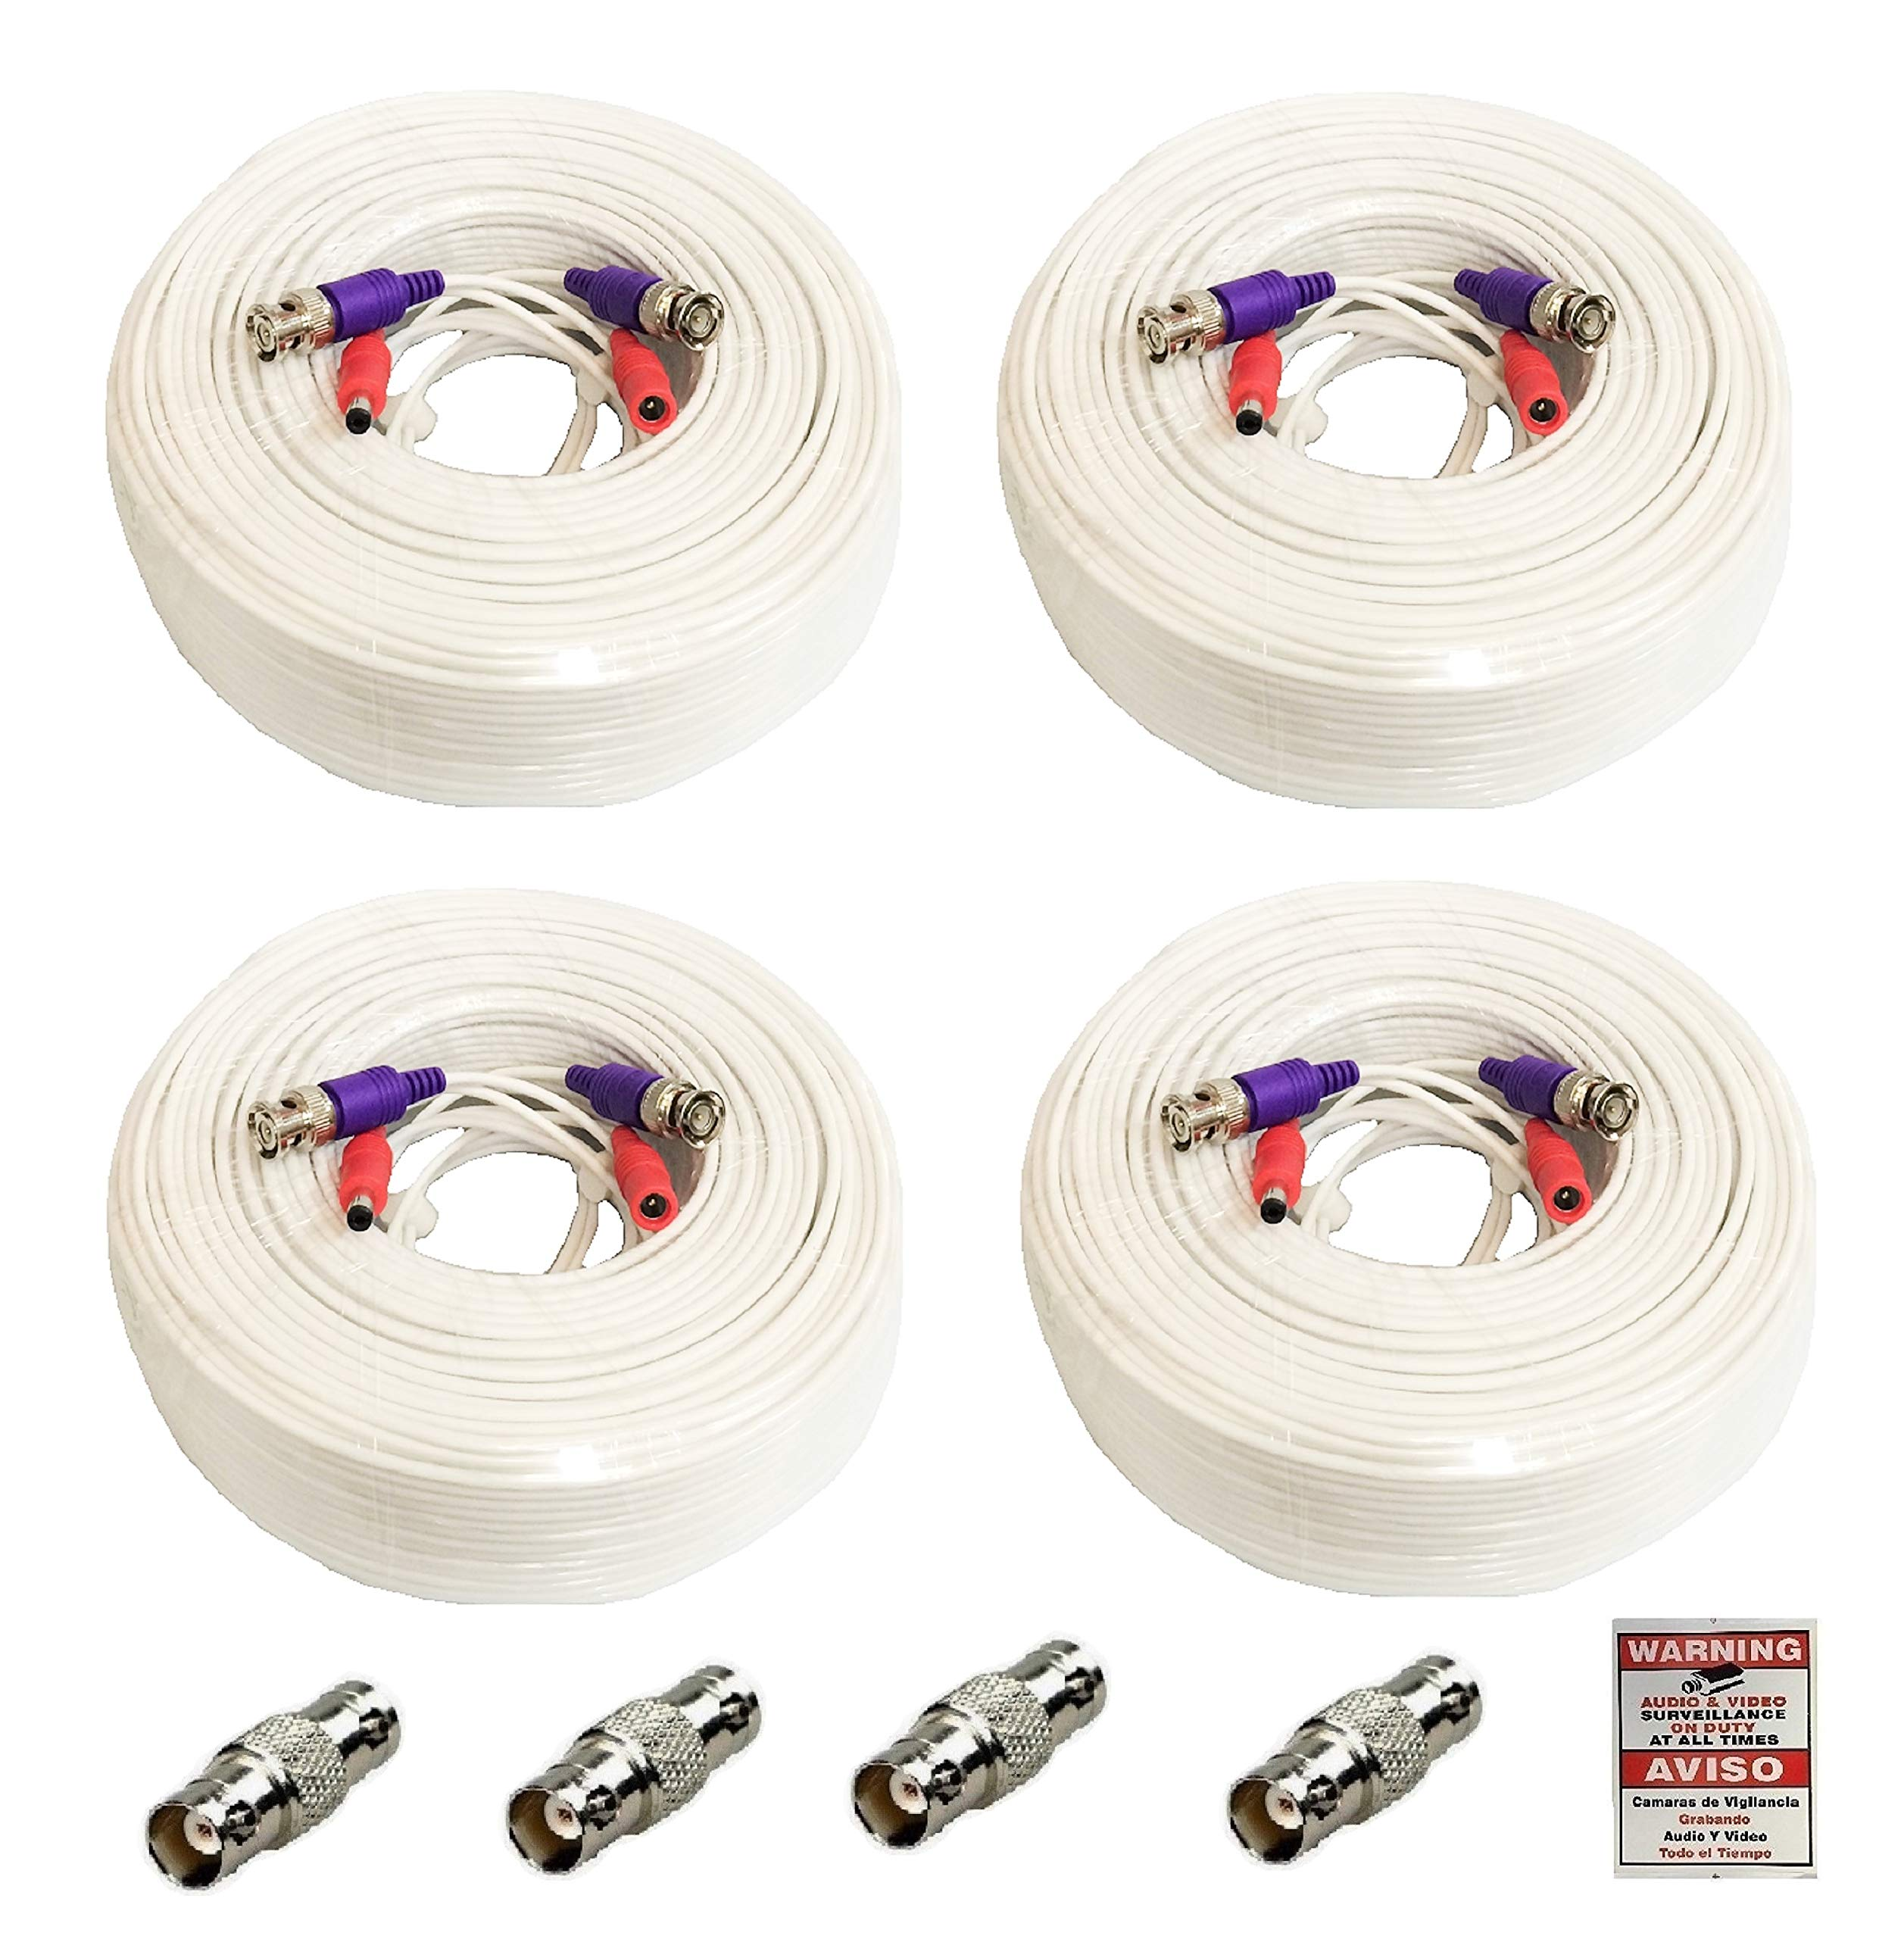 WennoW 4 Pack 100 Feet All-in-One Siamese 4K 8MP BNC Video & Power Extension Cable for All HD CCTV Security Cameras DVR System WT by WennoW